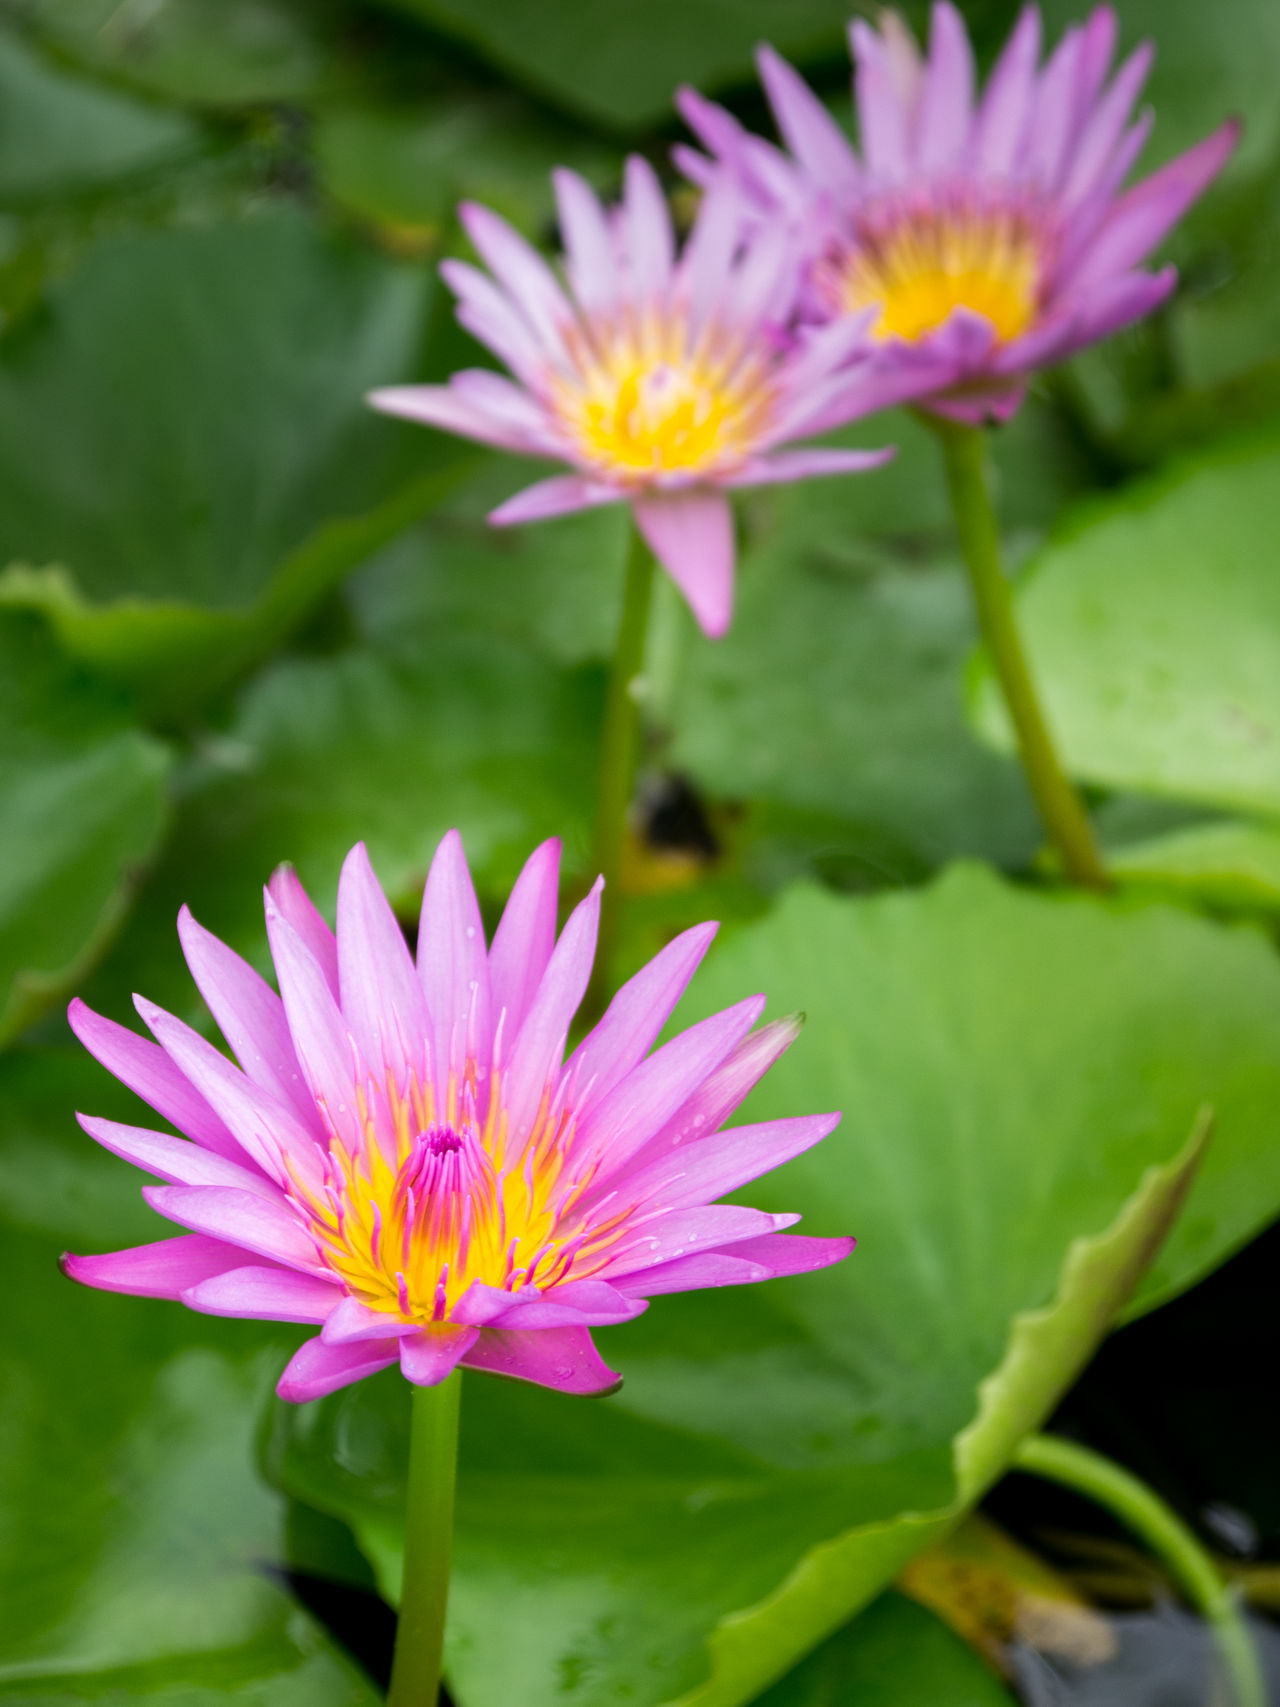 Blooming Purple Lotus in Pond Beauty In Nature Blooming Close-up Day Flower Flower Head Fragility Freshness Growth Leaf Lotus Lotus Water Lily Love Nature No People Outdoors Petal Pink Color Plant Purple